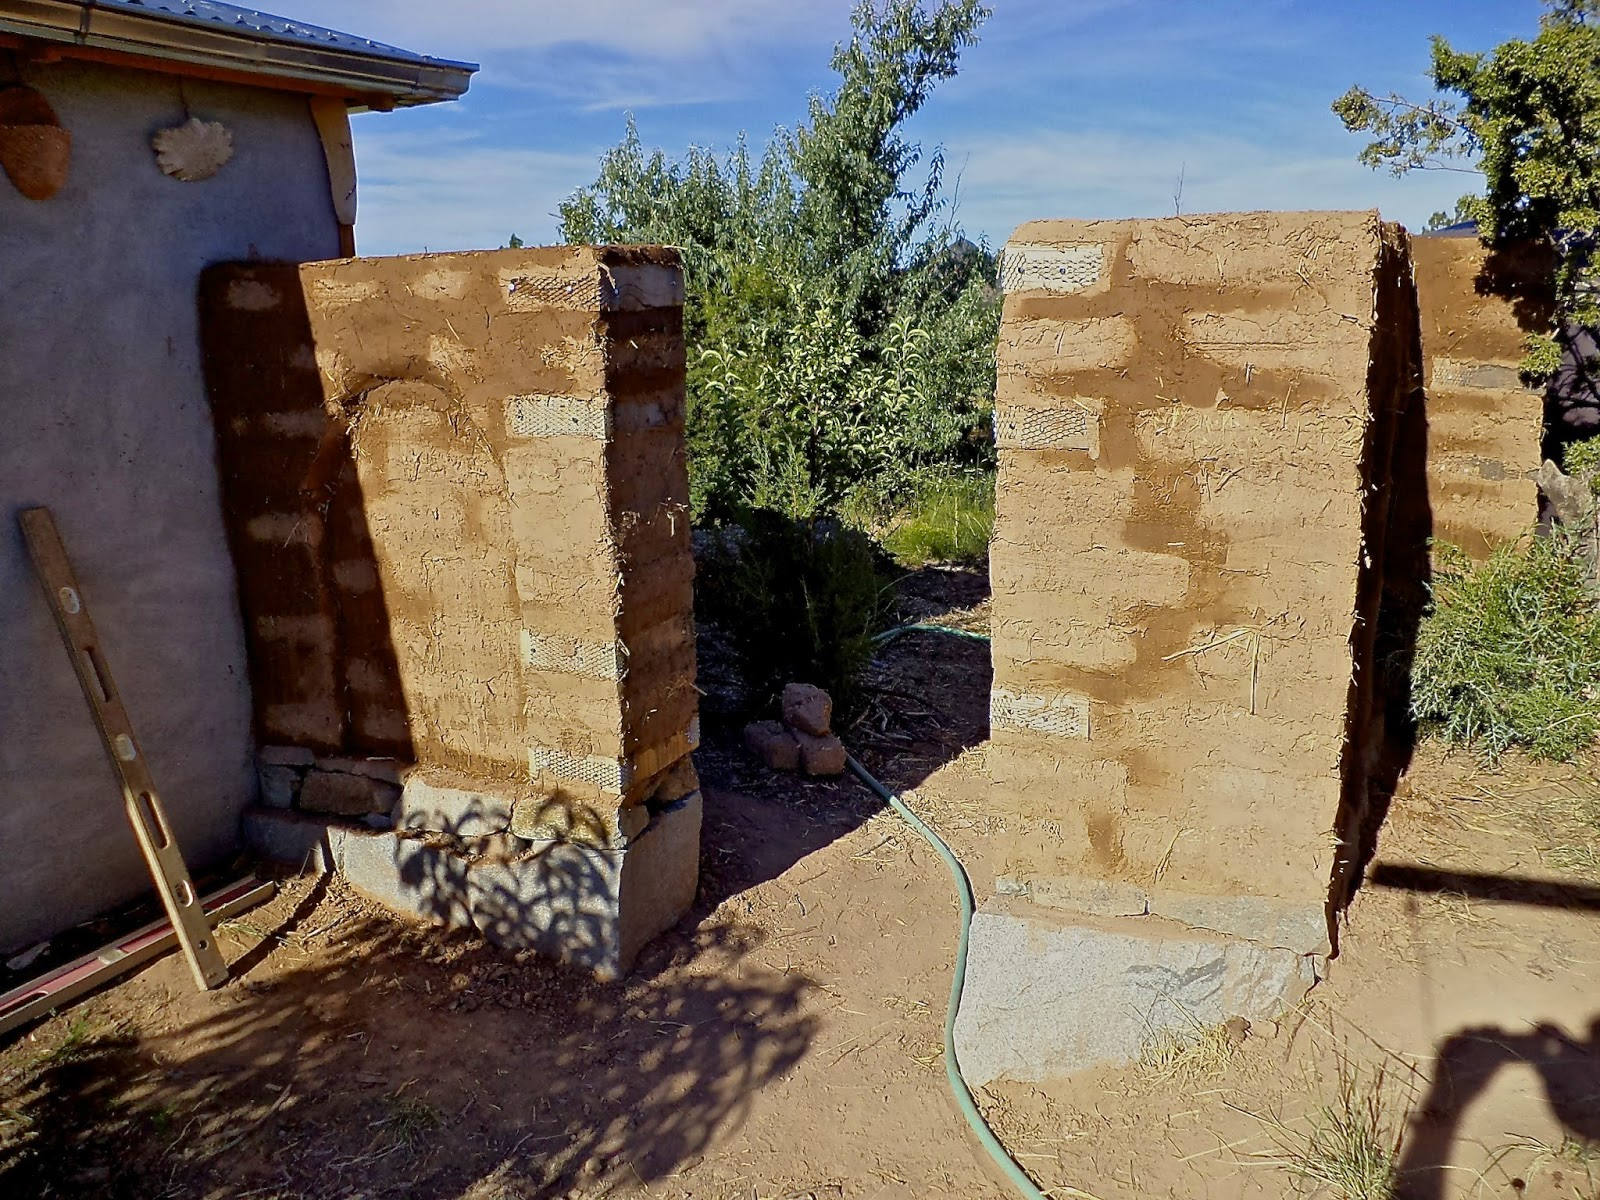 Alt build blog building an adobe wall 6 plastering and creating the designs - How to build an adobe house ...